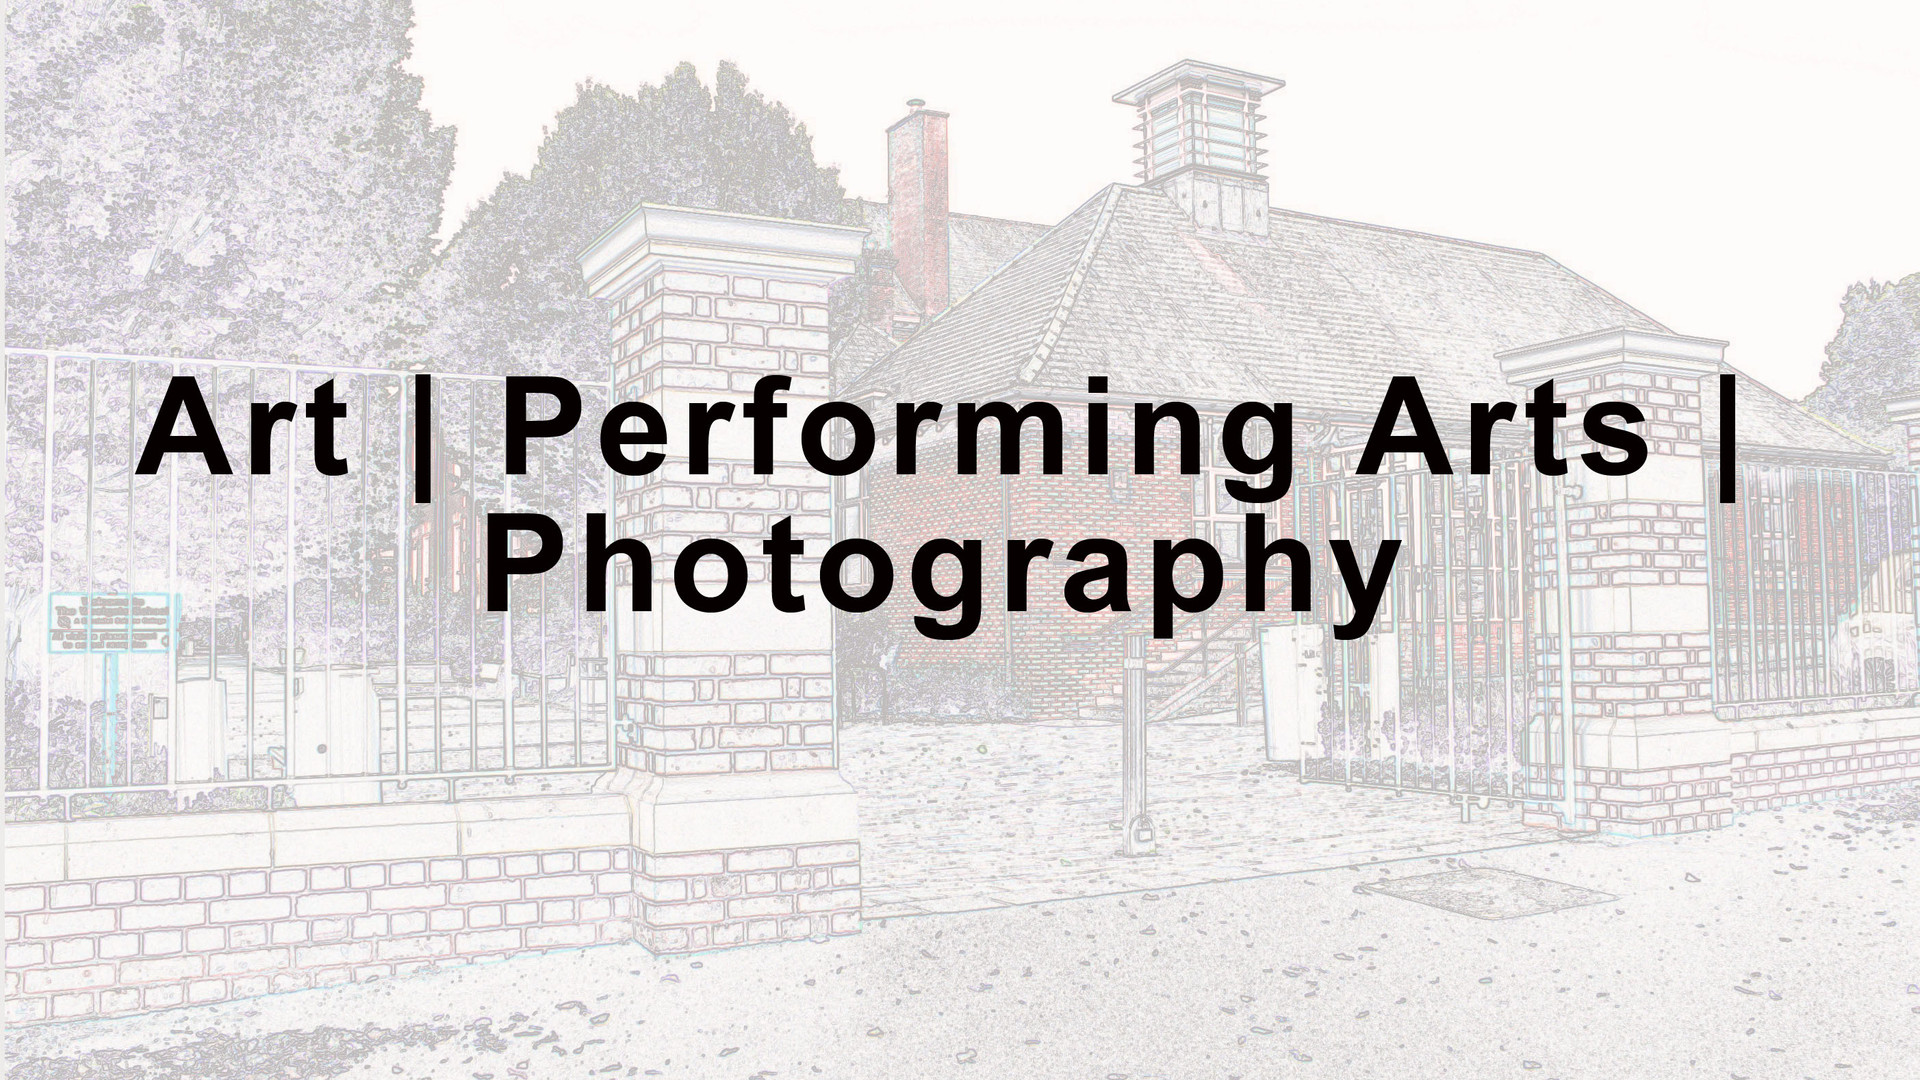 Art, Performing Arts & Photography